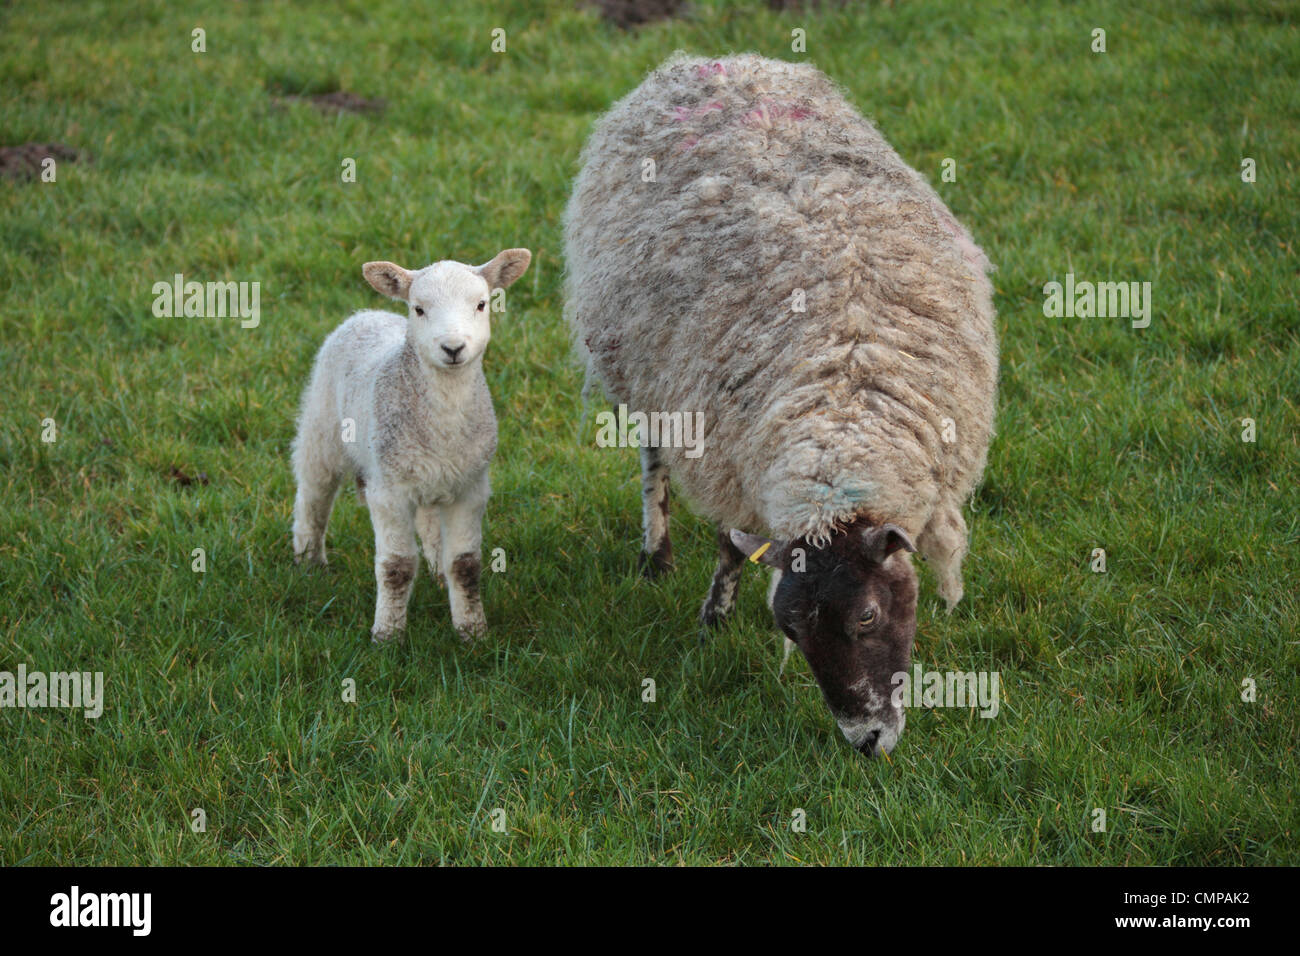 A ewe and her lamb in a field in Nidderdale, Yorkshire - Stock Image